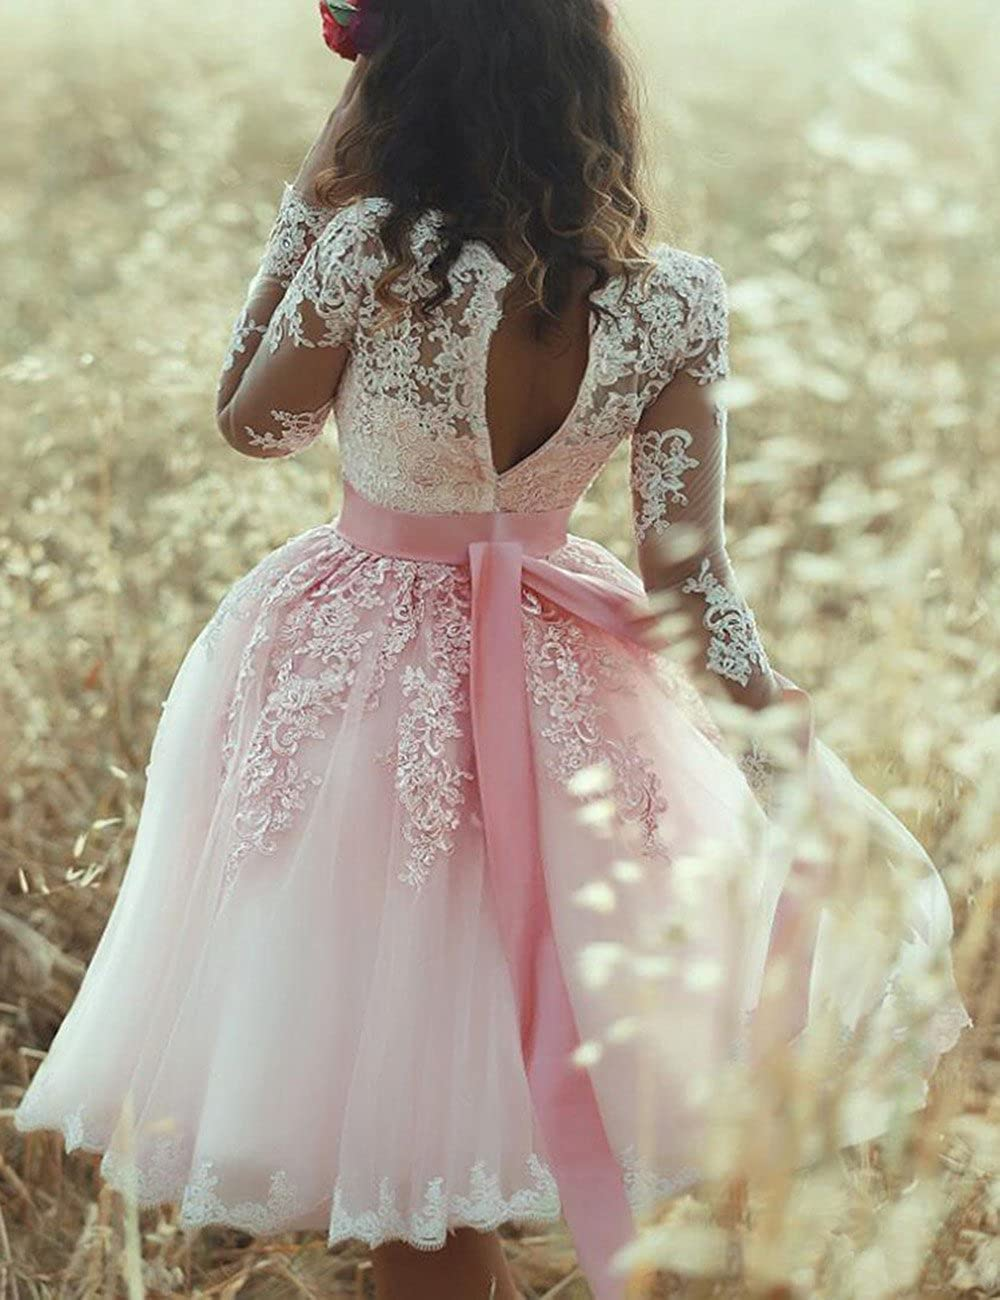 Amazon.com: Beautydress Blush Lace Short Prom Gown Sheer Long Sleeve Cocktail Homecoming Dress BP111: Clothing